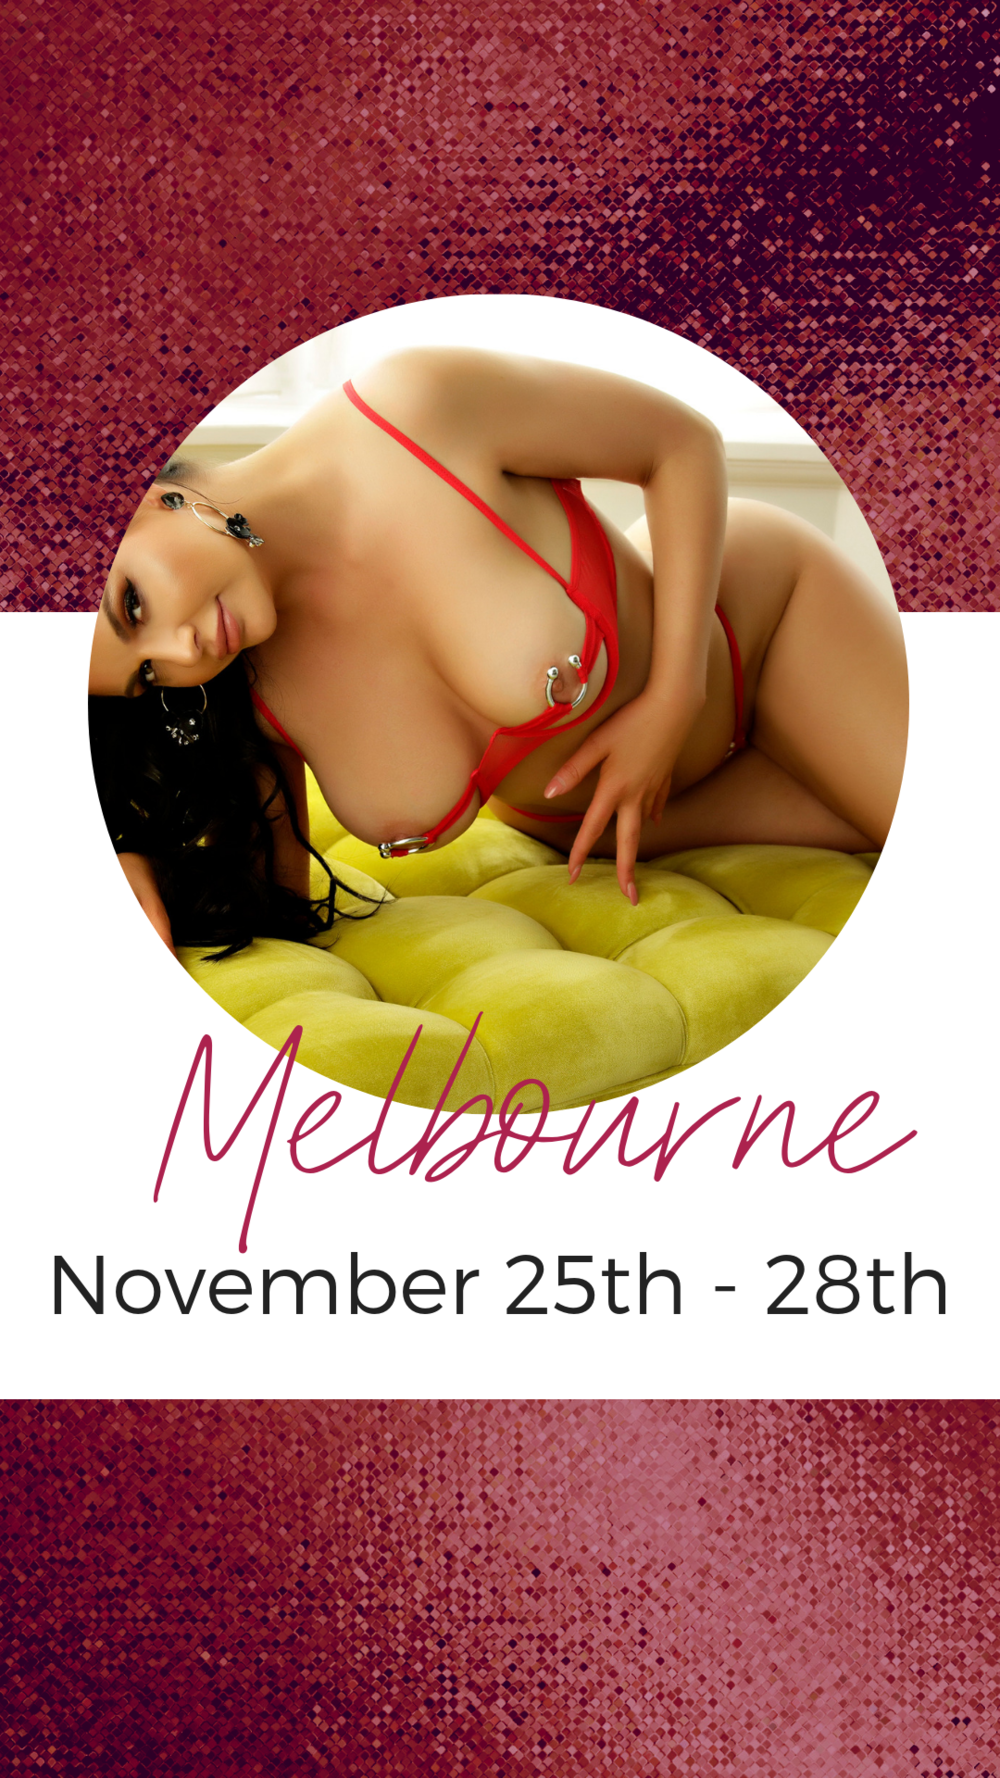 Contact Me - Click here to book our steamy rendezvous now to avoid missing out xx